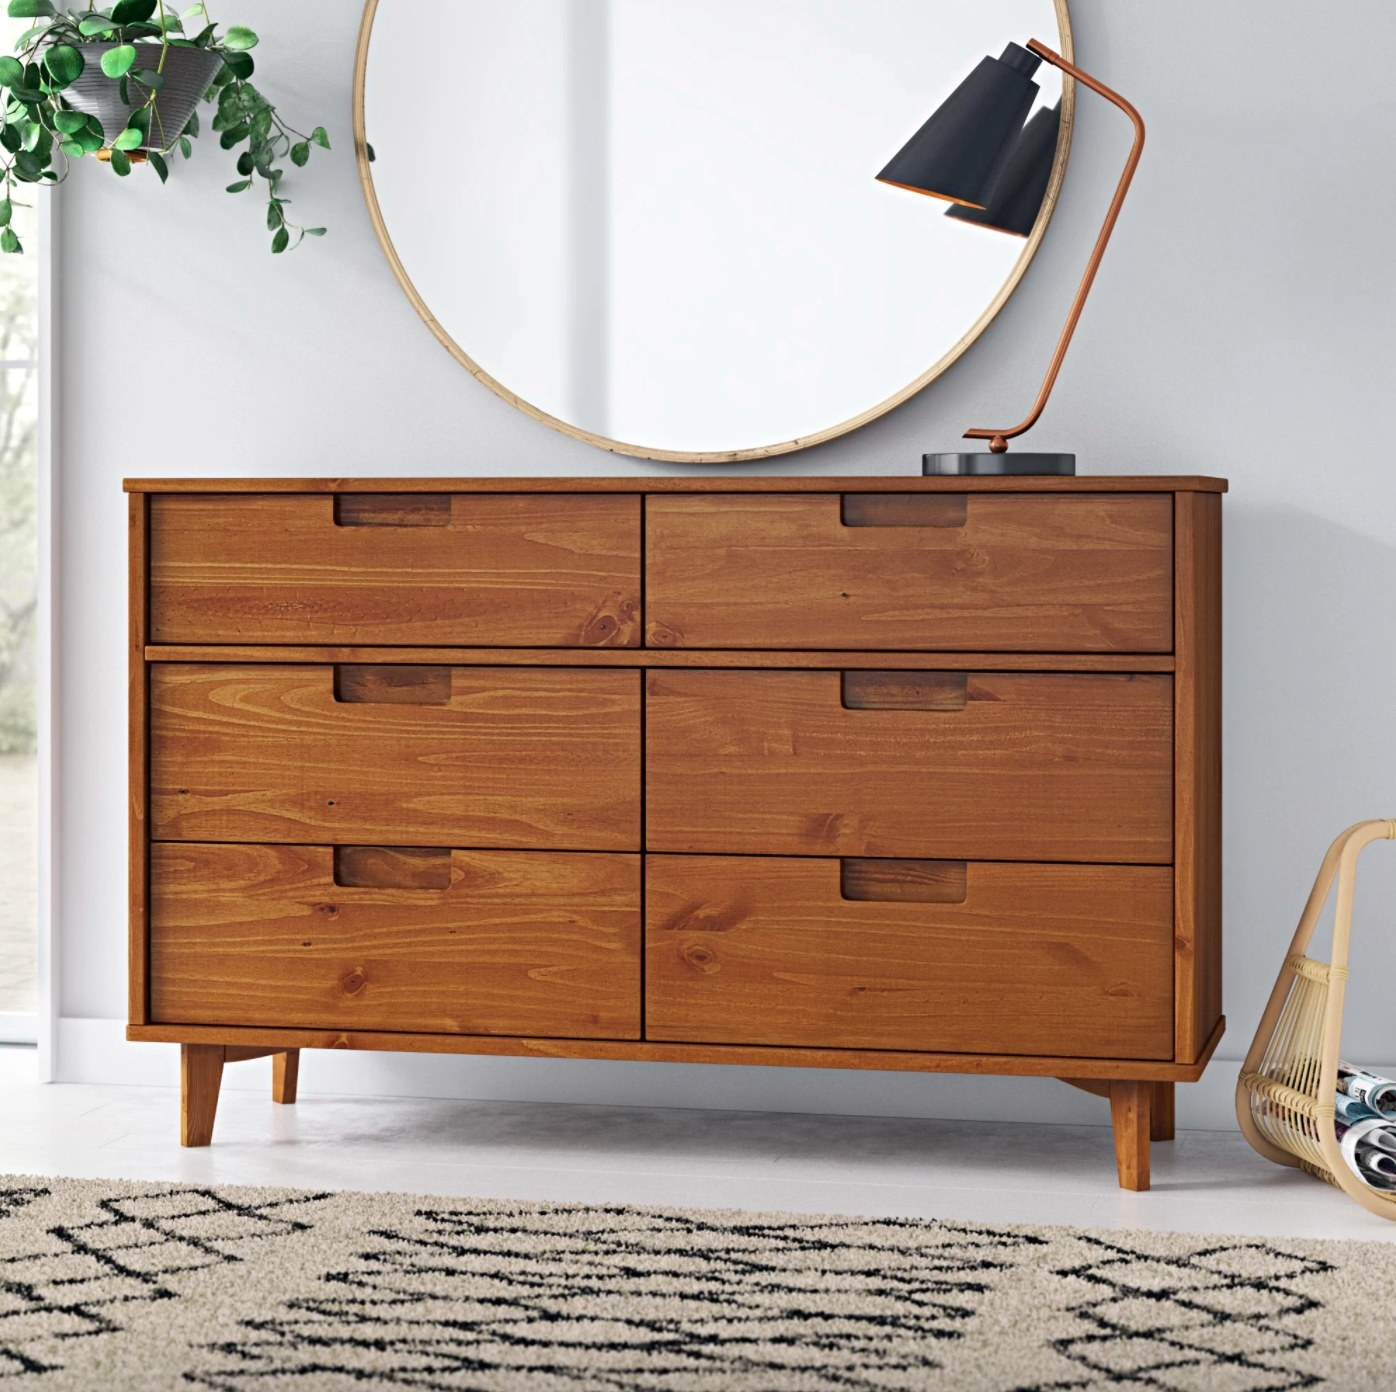 The six drawer double dresser in caramel with a large round mirror hanging above it